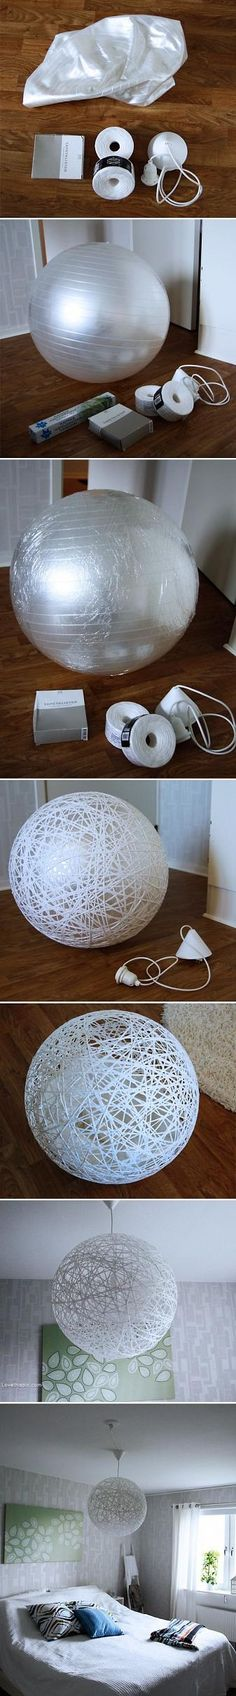 DIY String Lamp by Bill - LoveThisPic